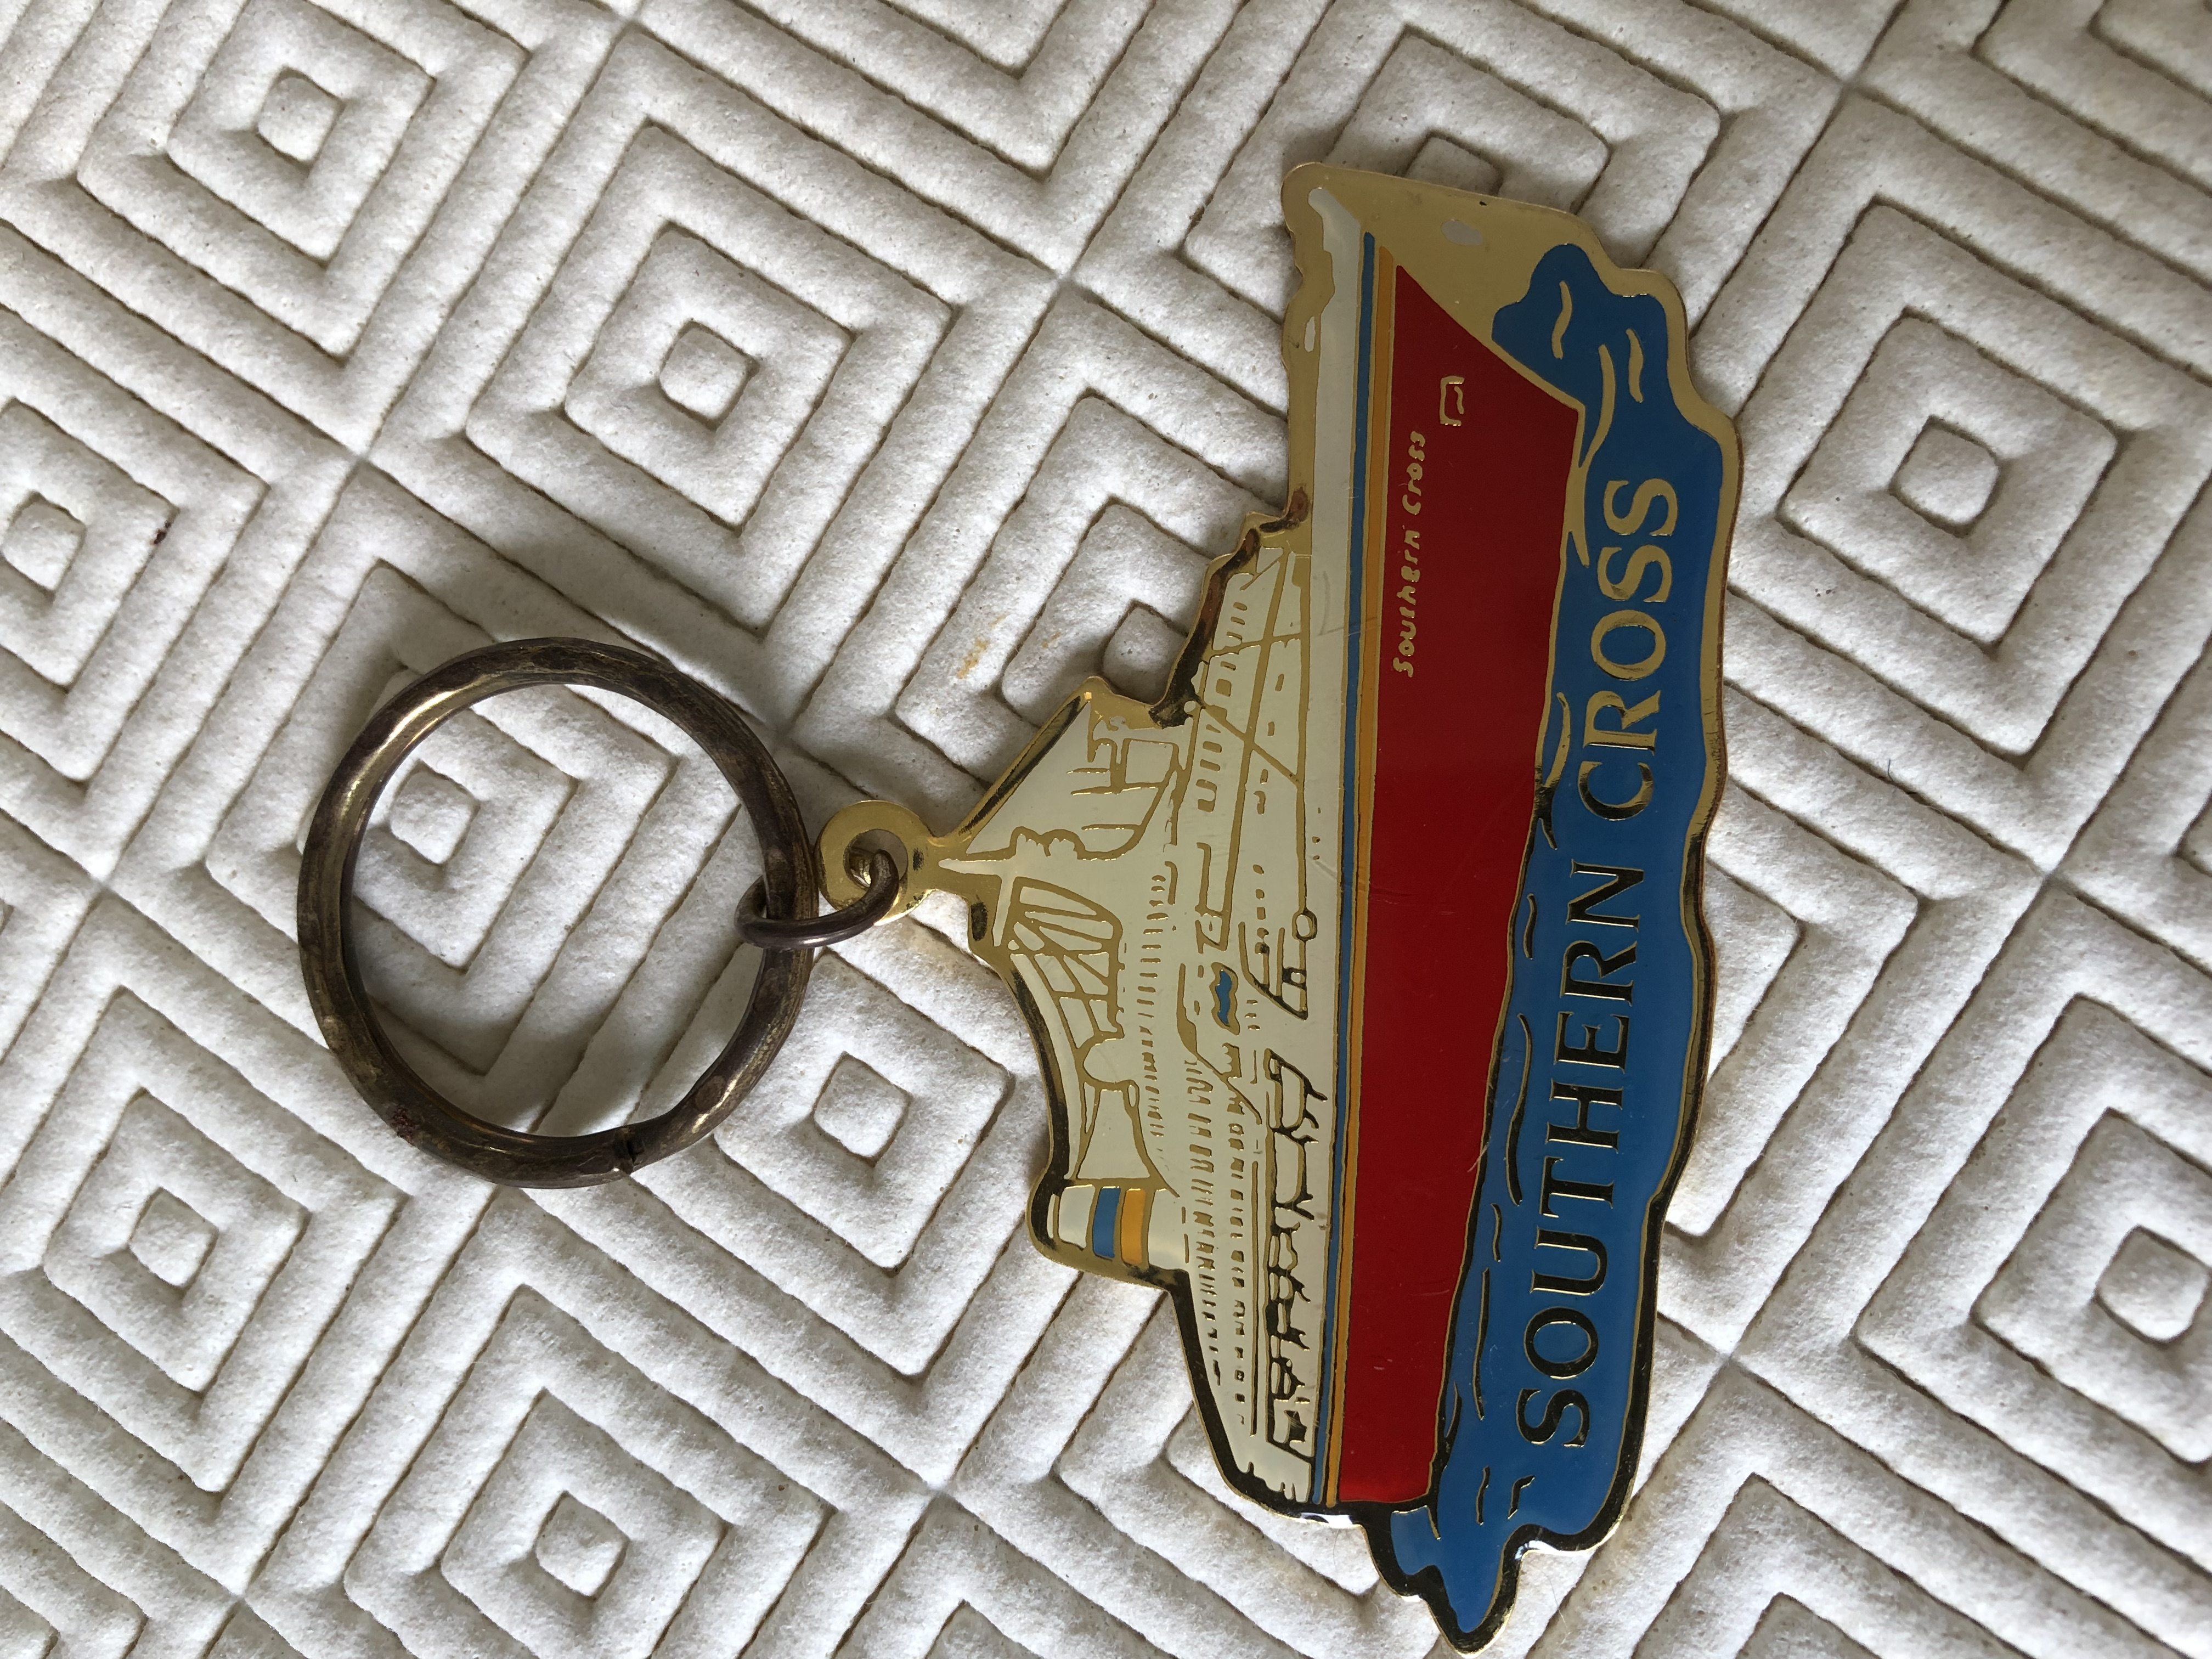 KEYRING SOUVENIR FROM THE SHAW SAVILL LINE VESSEL THE SOUTHERN CROSS